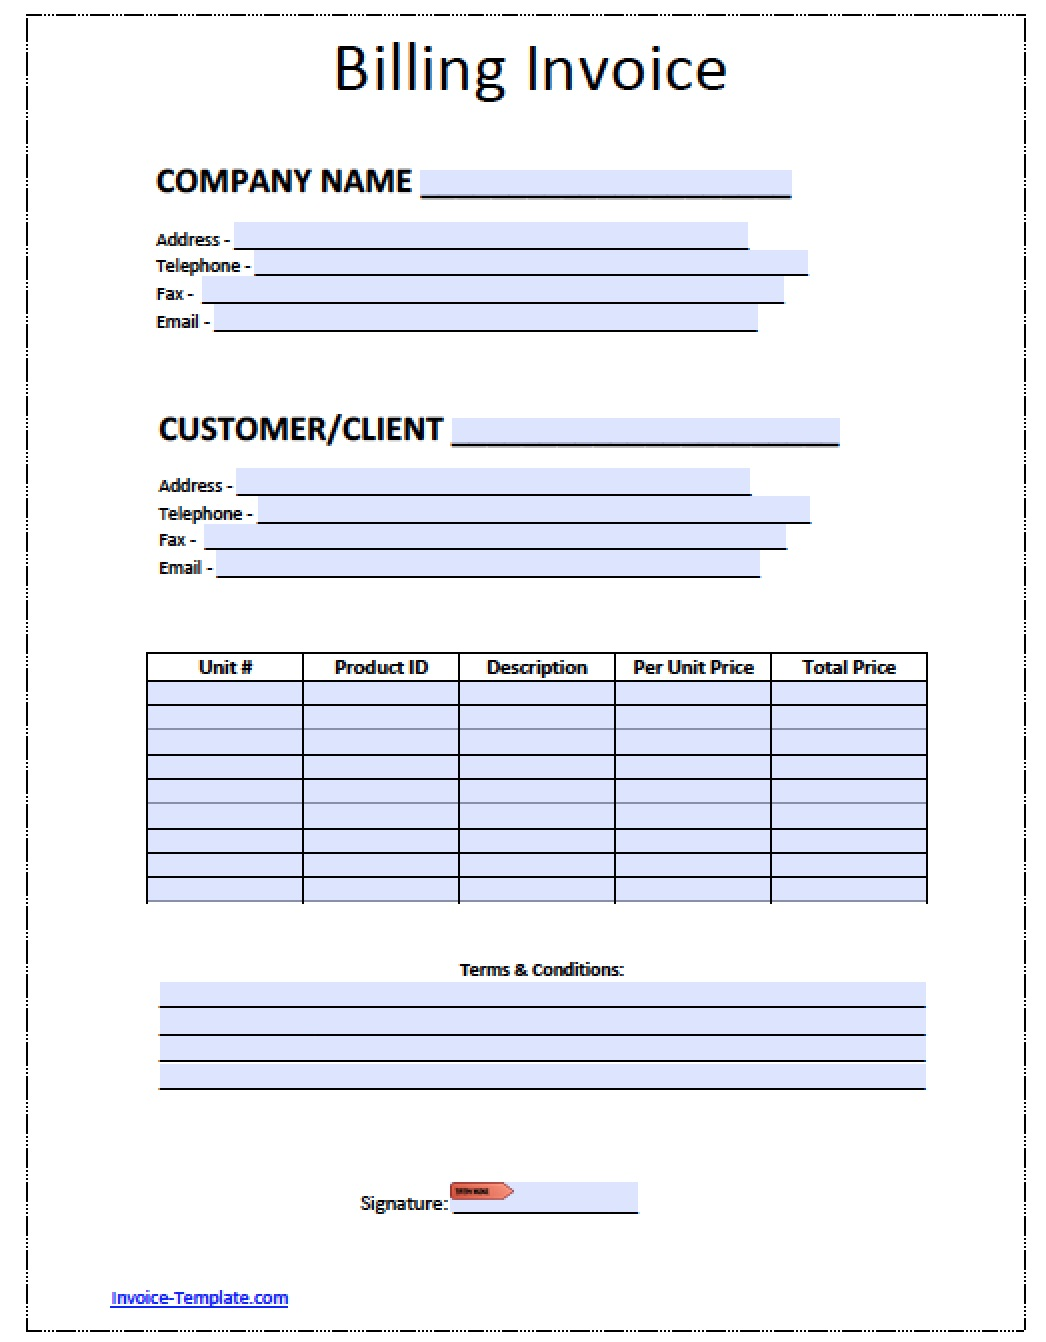 Shopdesignsus  Winsome Billing Invoice Invoices Faq U Cloudflare Support Billing  With Inspiring Free Billing Invoice Template  Excel  Pdf  Word Doc  Billing With Enchanting Invoice Template Sample Also Invoice Definition Business In Addition Google Docs Invoices And Invoices Due As Well As On Line Invoice Additionally Free Printable Blank Invoice From Happytomco With Shopdesignsus  Inspiring Billing Invoice Invoices Faq U Cloudflare Support Billing  With Enchanting Free Billing Invoice Template  Excel  Pdf  Word Doc  Billing And Winsome Invoice Template Sample Also Invoice Definition Business In Addition Google Docs Invoices From Happytomco